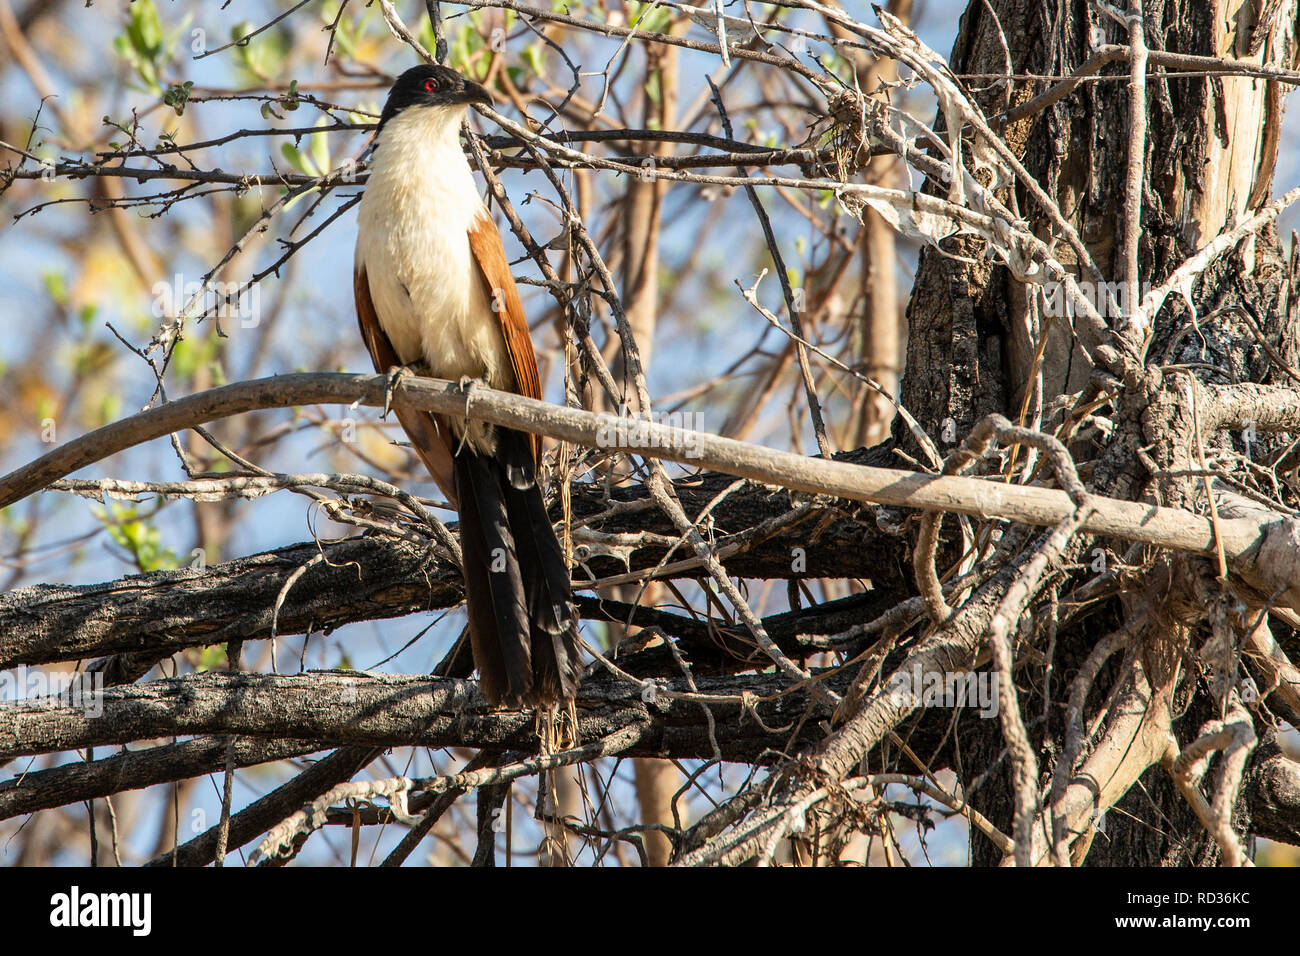 Coppery-tailed coucal (Centropus cupreicaudus) by the Zambezi River. - Stock Image